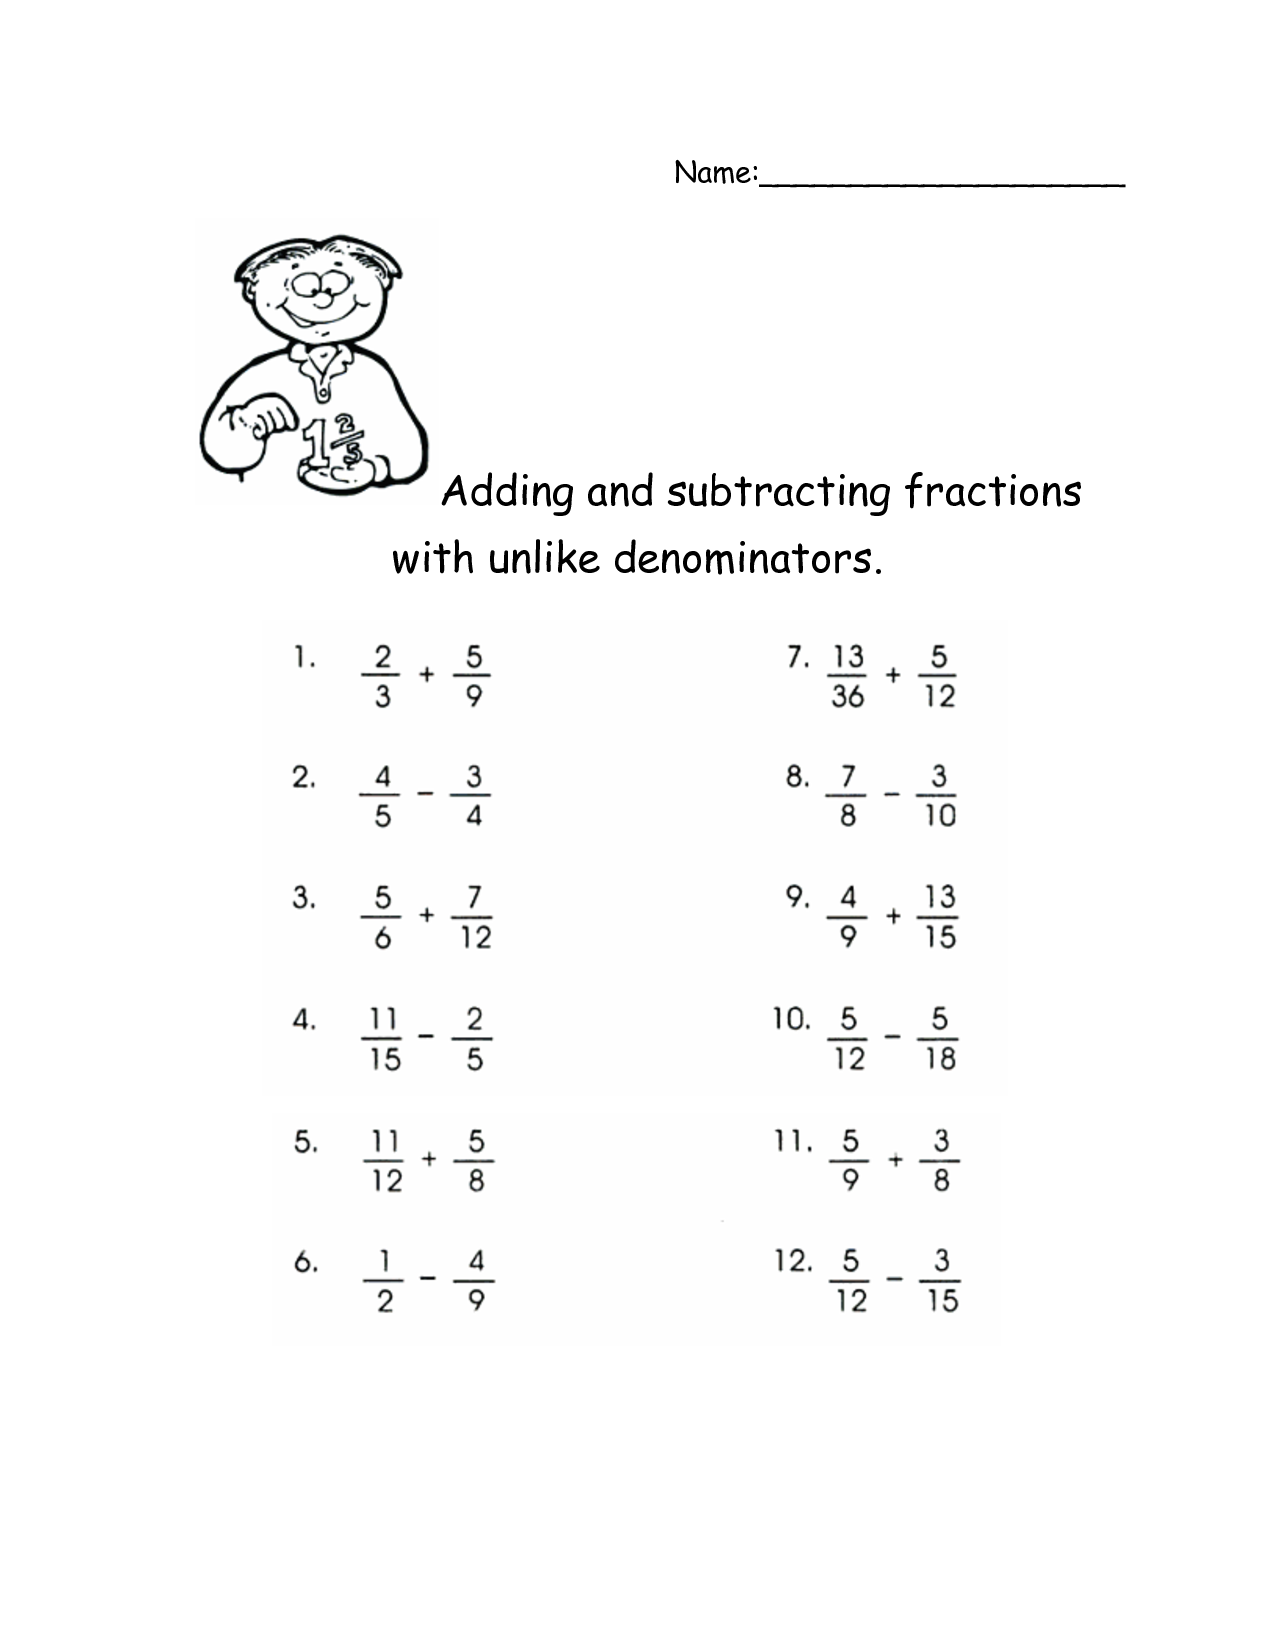 worksheet Fractions Addition And Subtraction Worksheet adding and subtracting fractions with unlike denominators activities